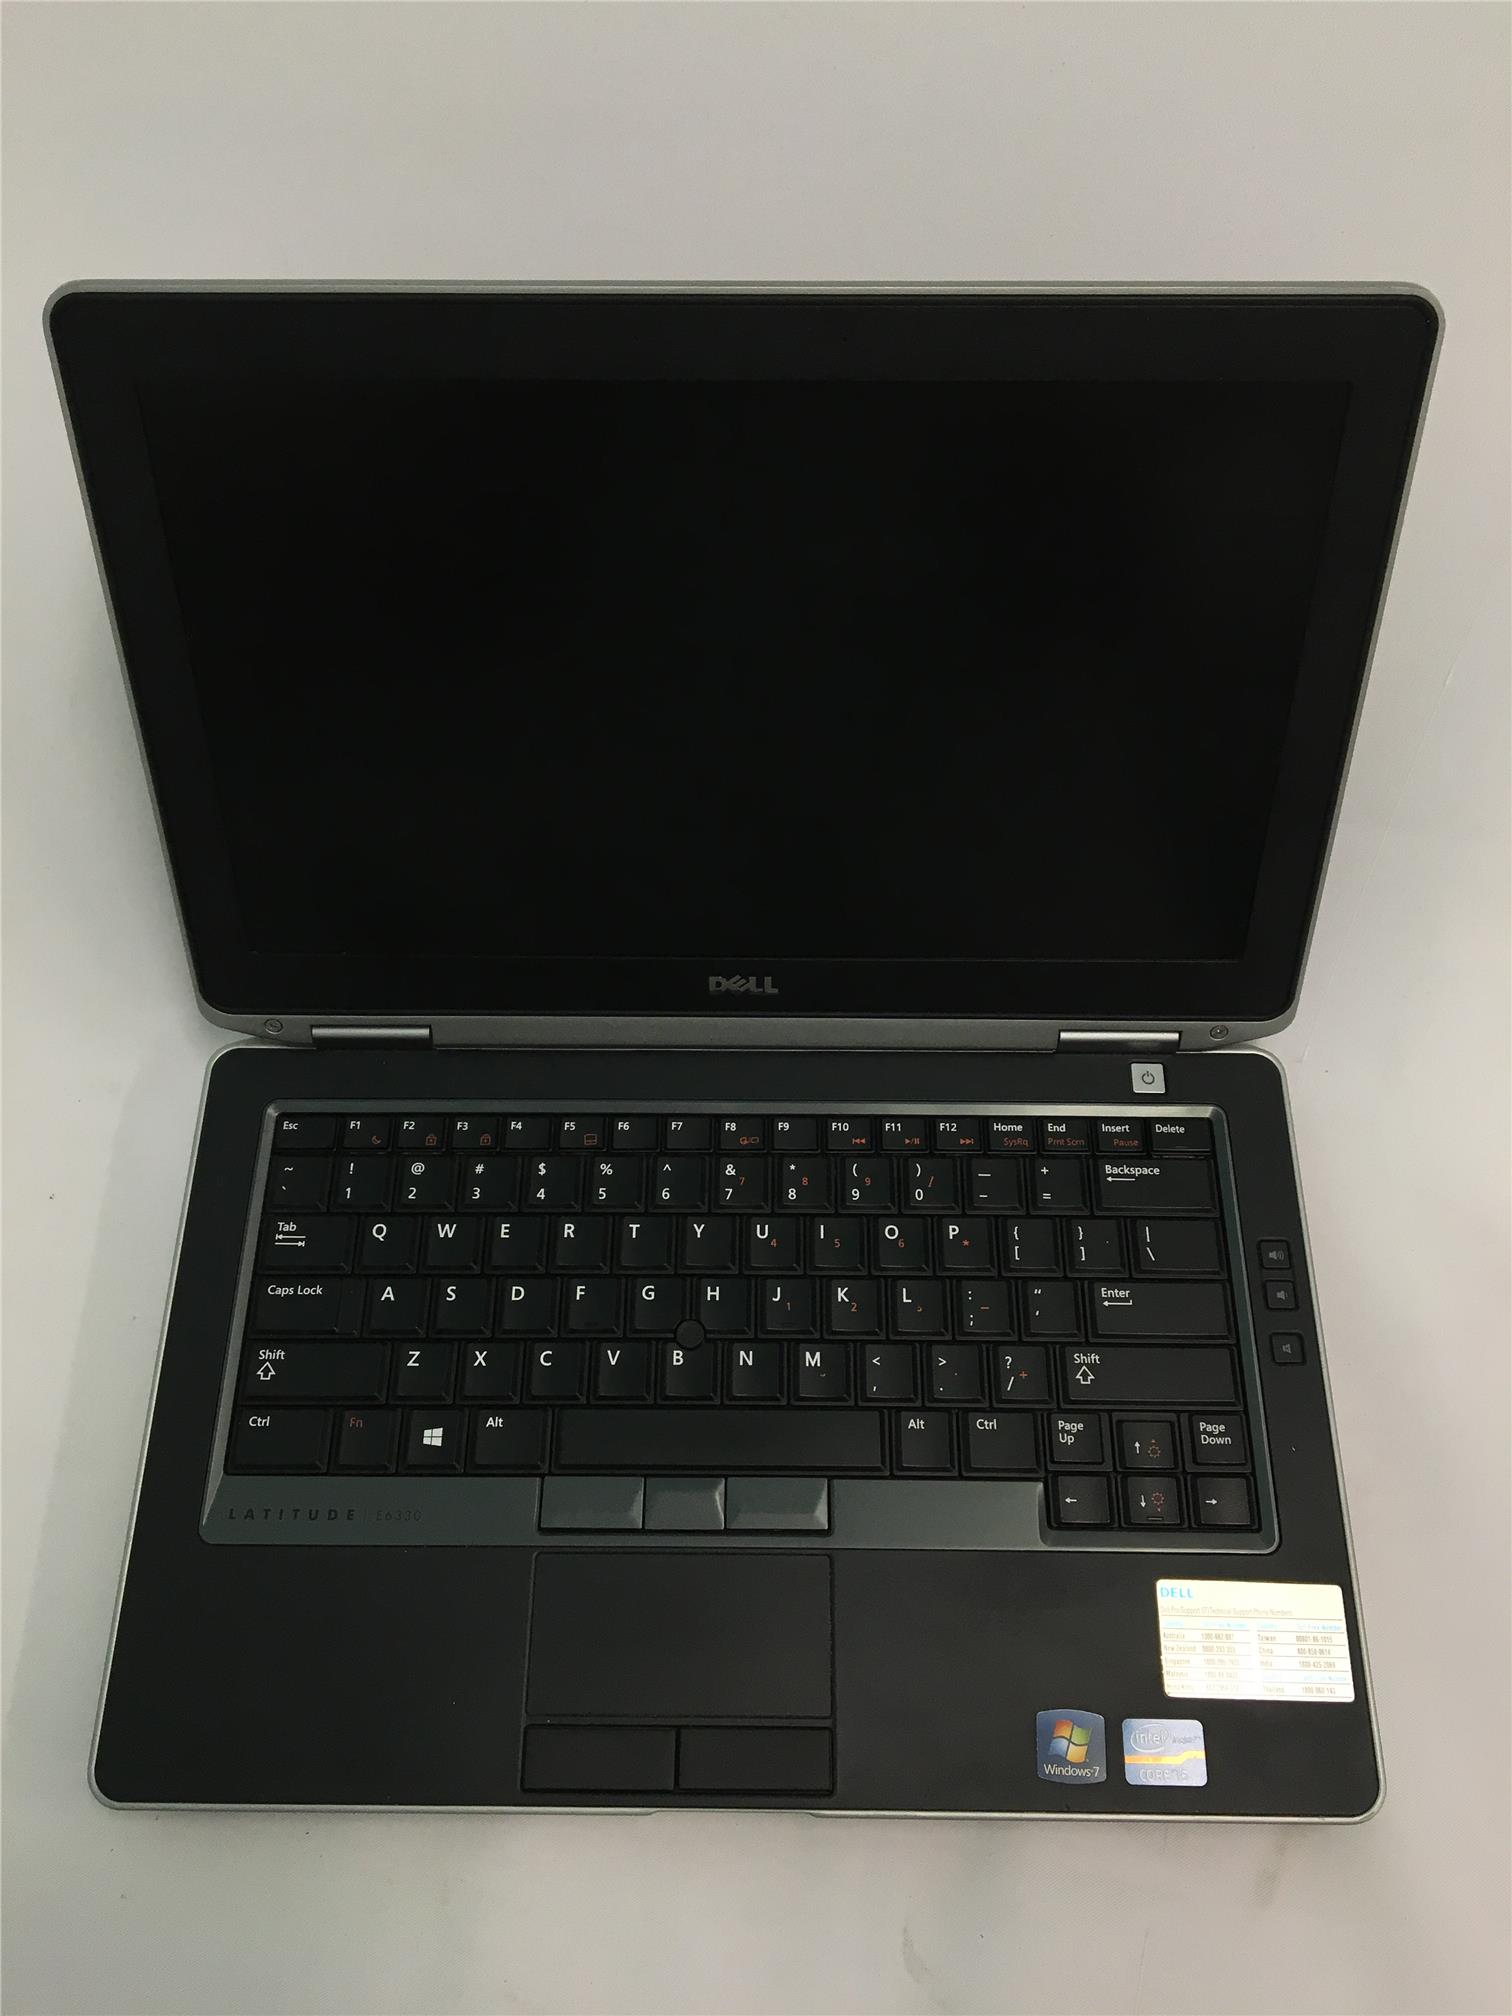 Dell Latitude E6330 i5-3320M 2.6GHz/ 4GB/ 320GB/ RW/ Without Webcam